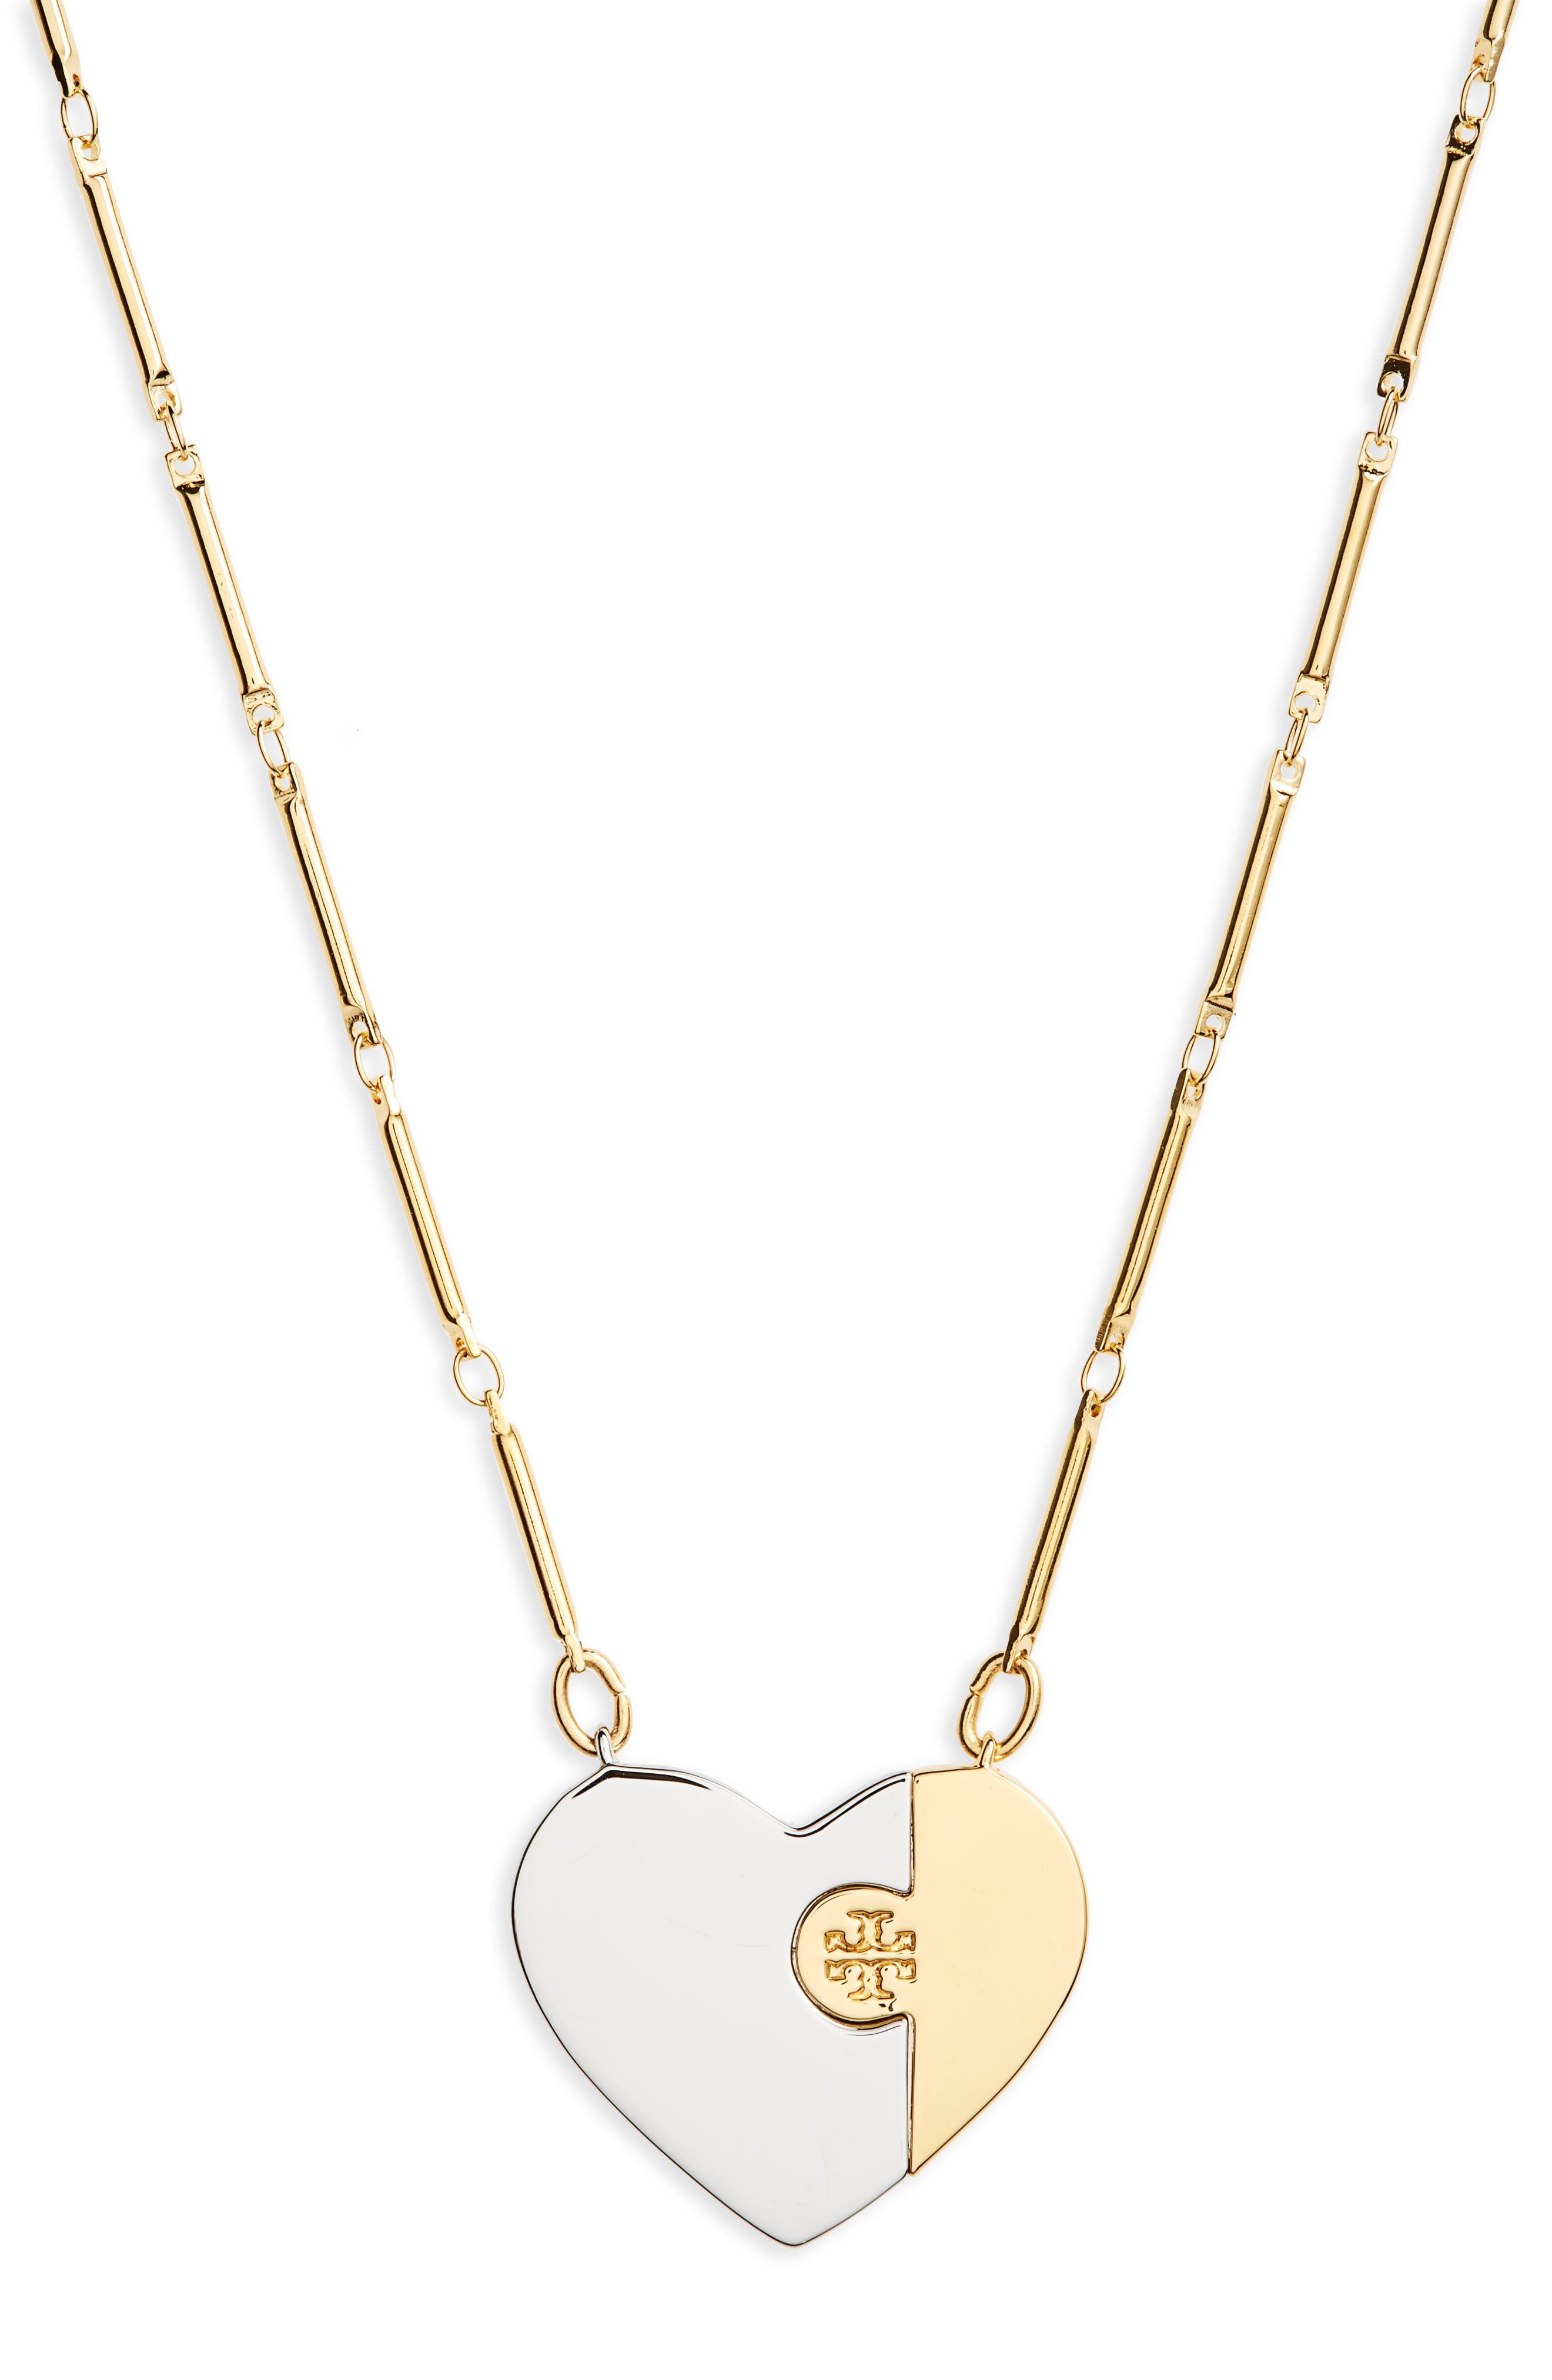 Main Image - Tory Burch Puzzle Heart Pendant Necklace